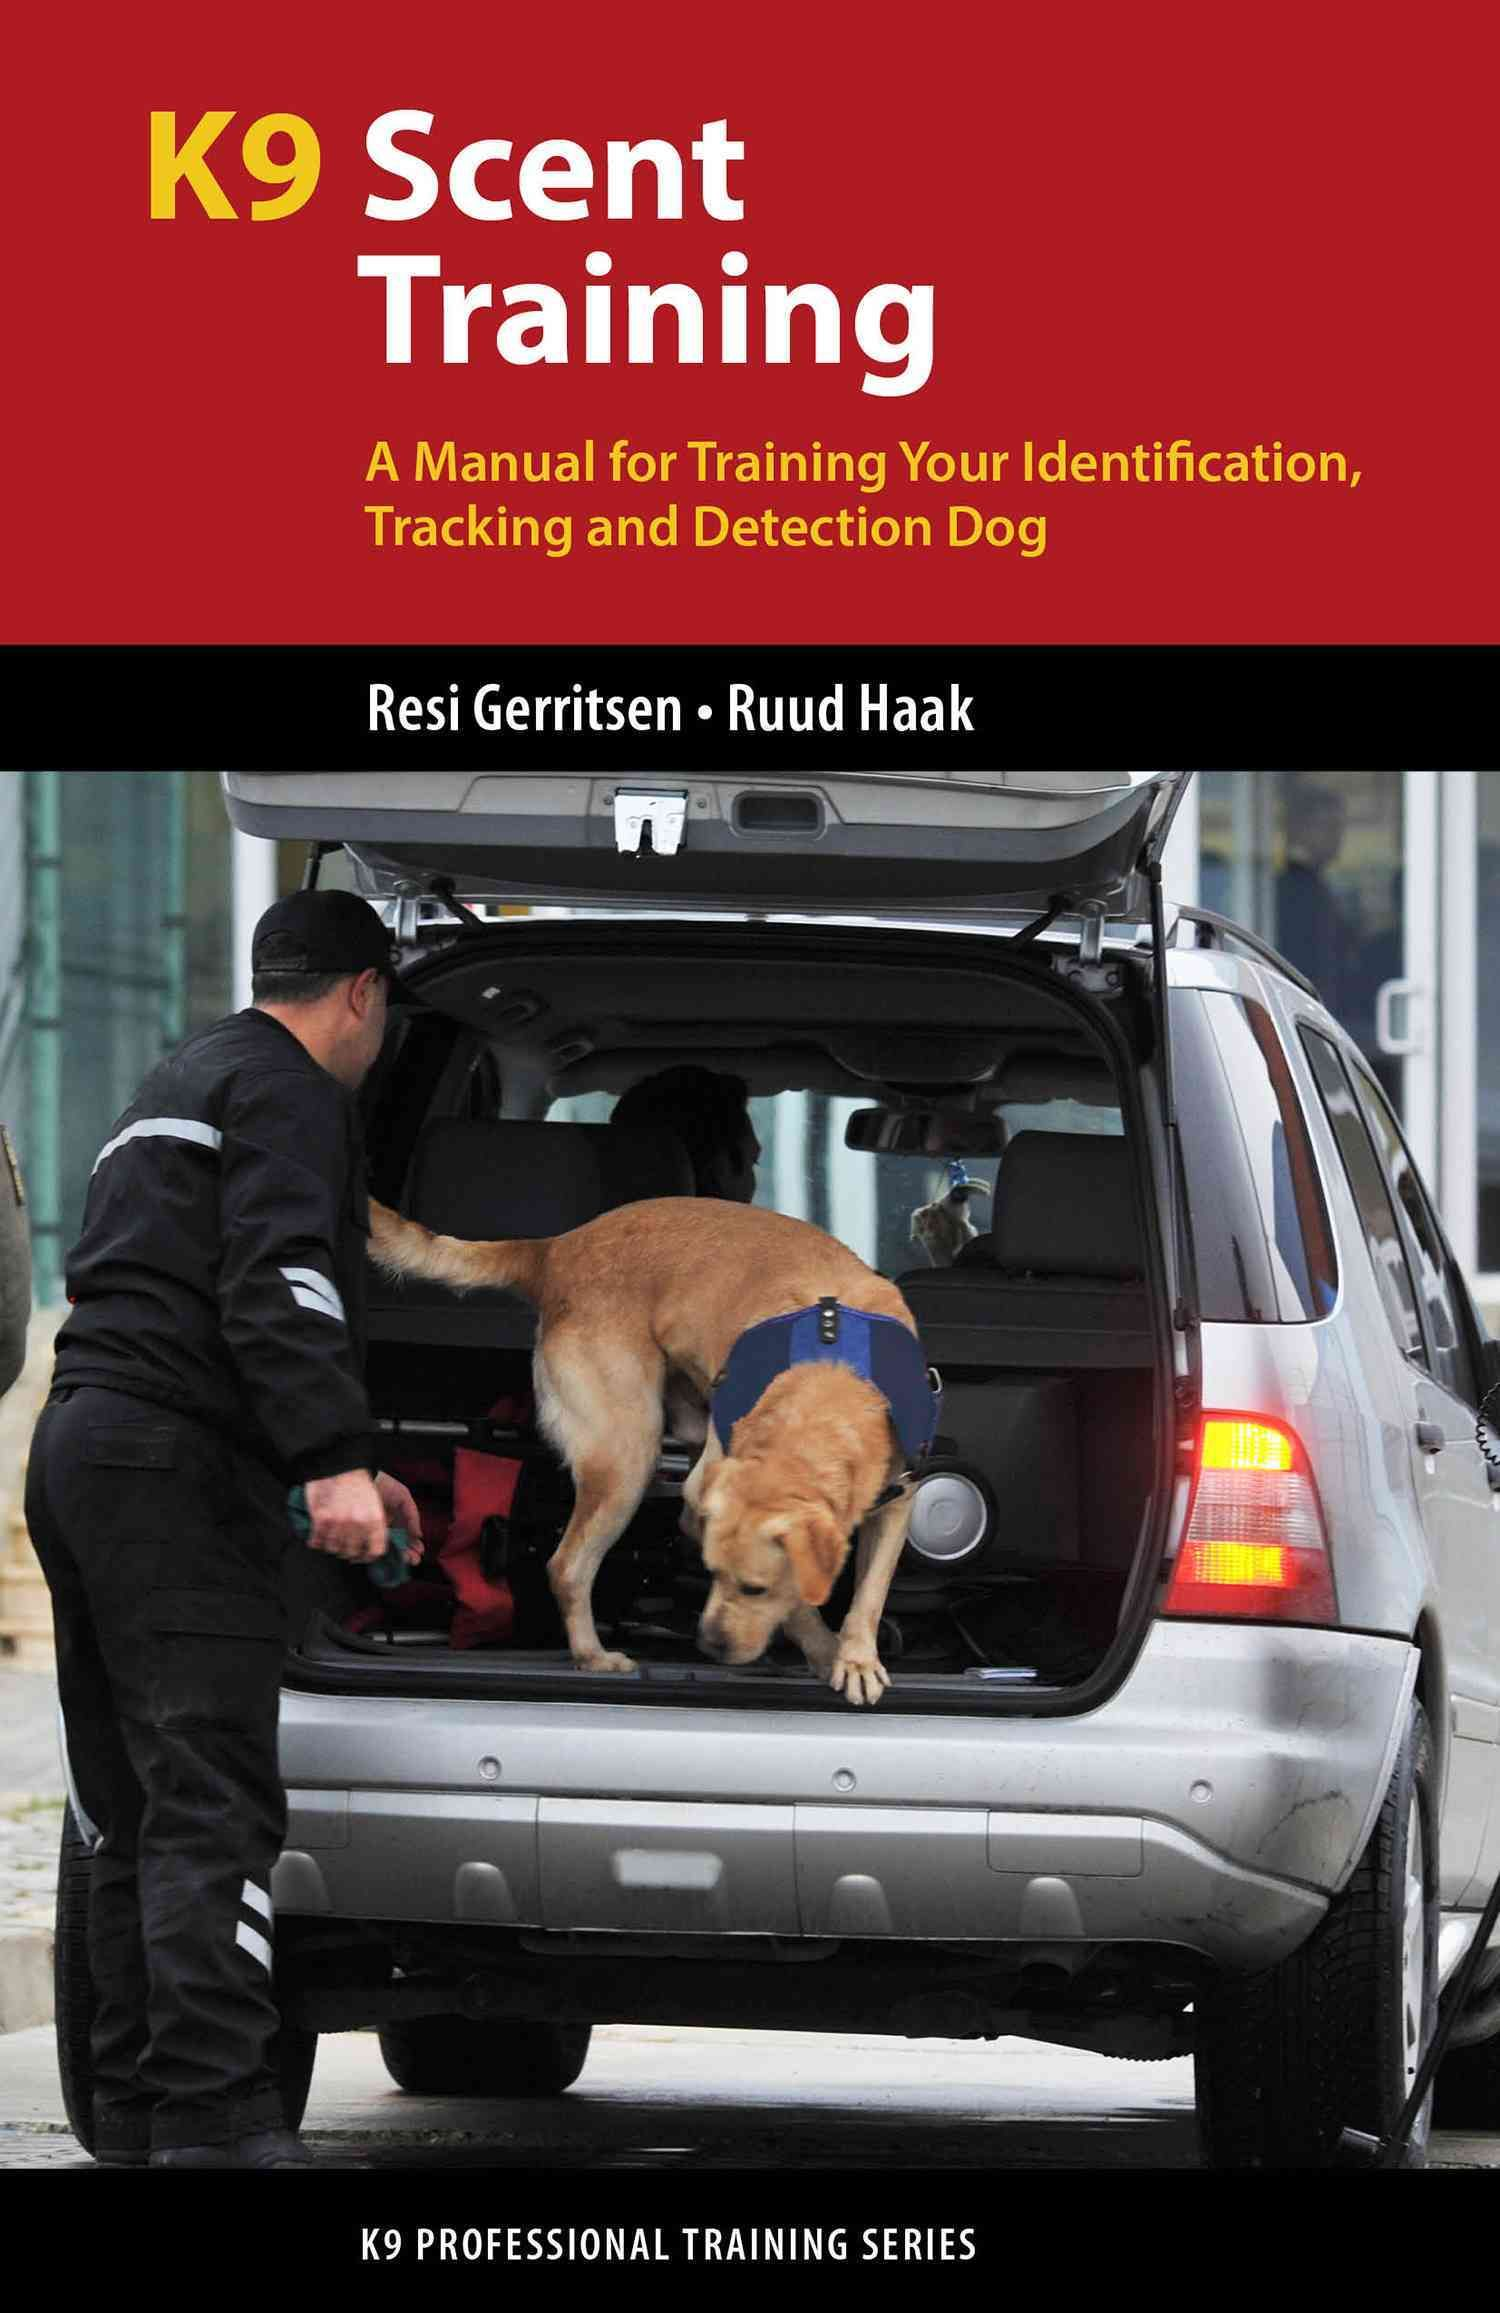 In This Must Have Guide For Sar Teams And Police K9 Trainers And